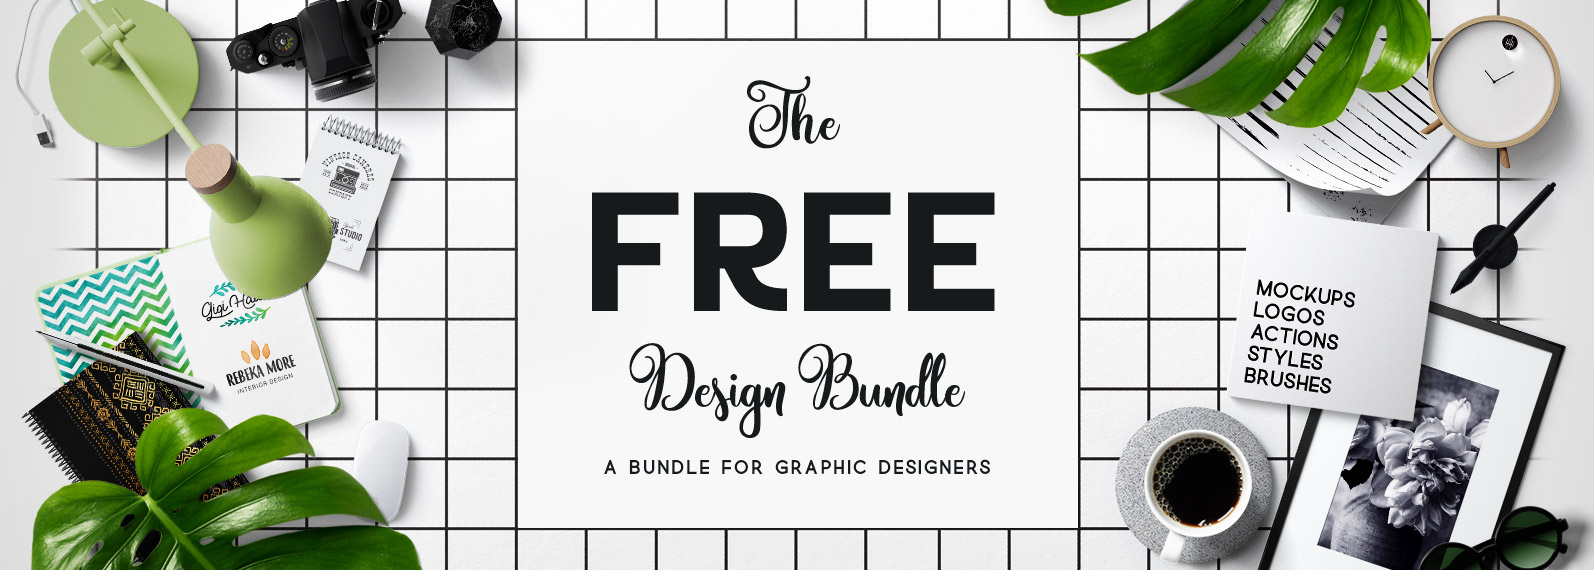 The Free Design Bundle Cover